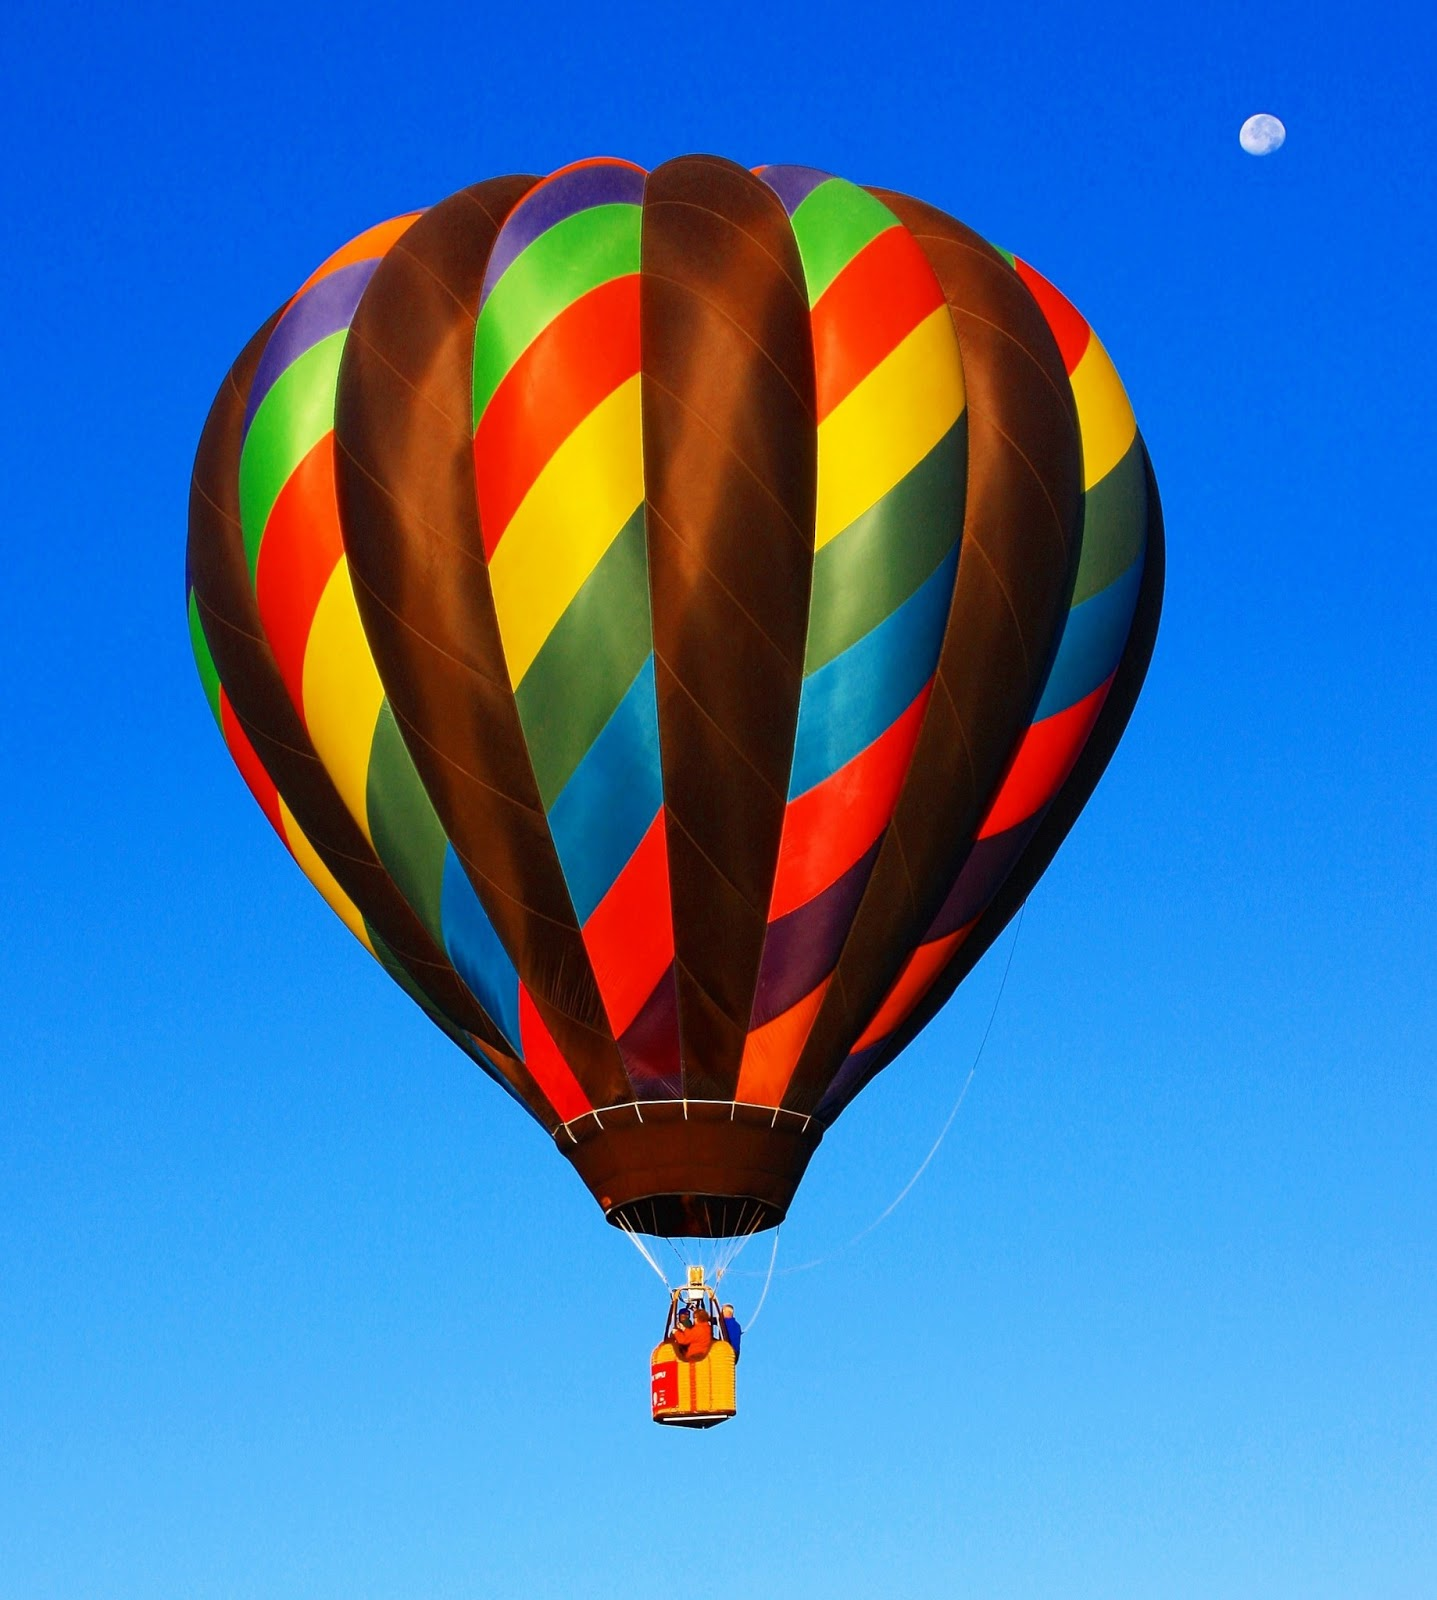 Cool Picture Collection: multi colored hot air balloon